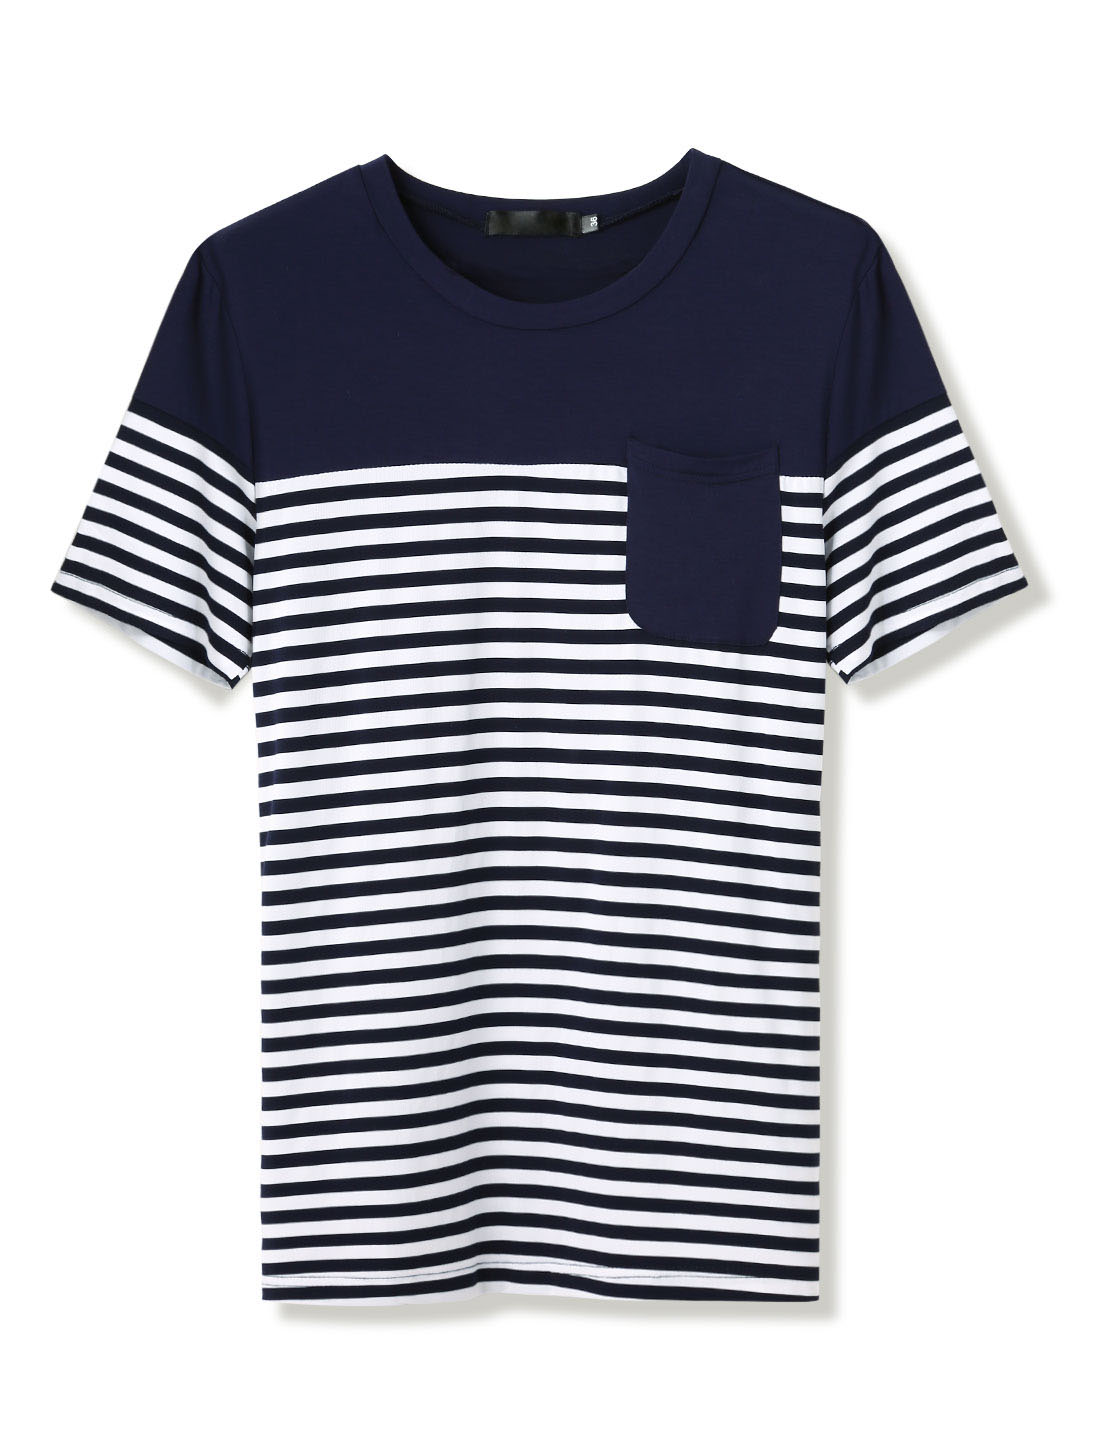 Men Short Sleeve Patch Pocket Slim Fit Casual Striped T-Shirt Navy Blue S